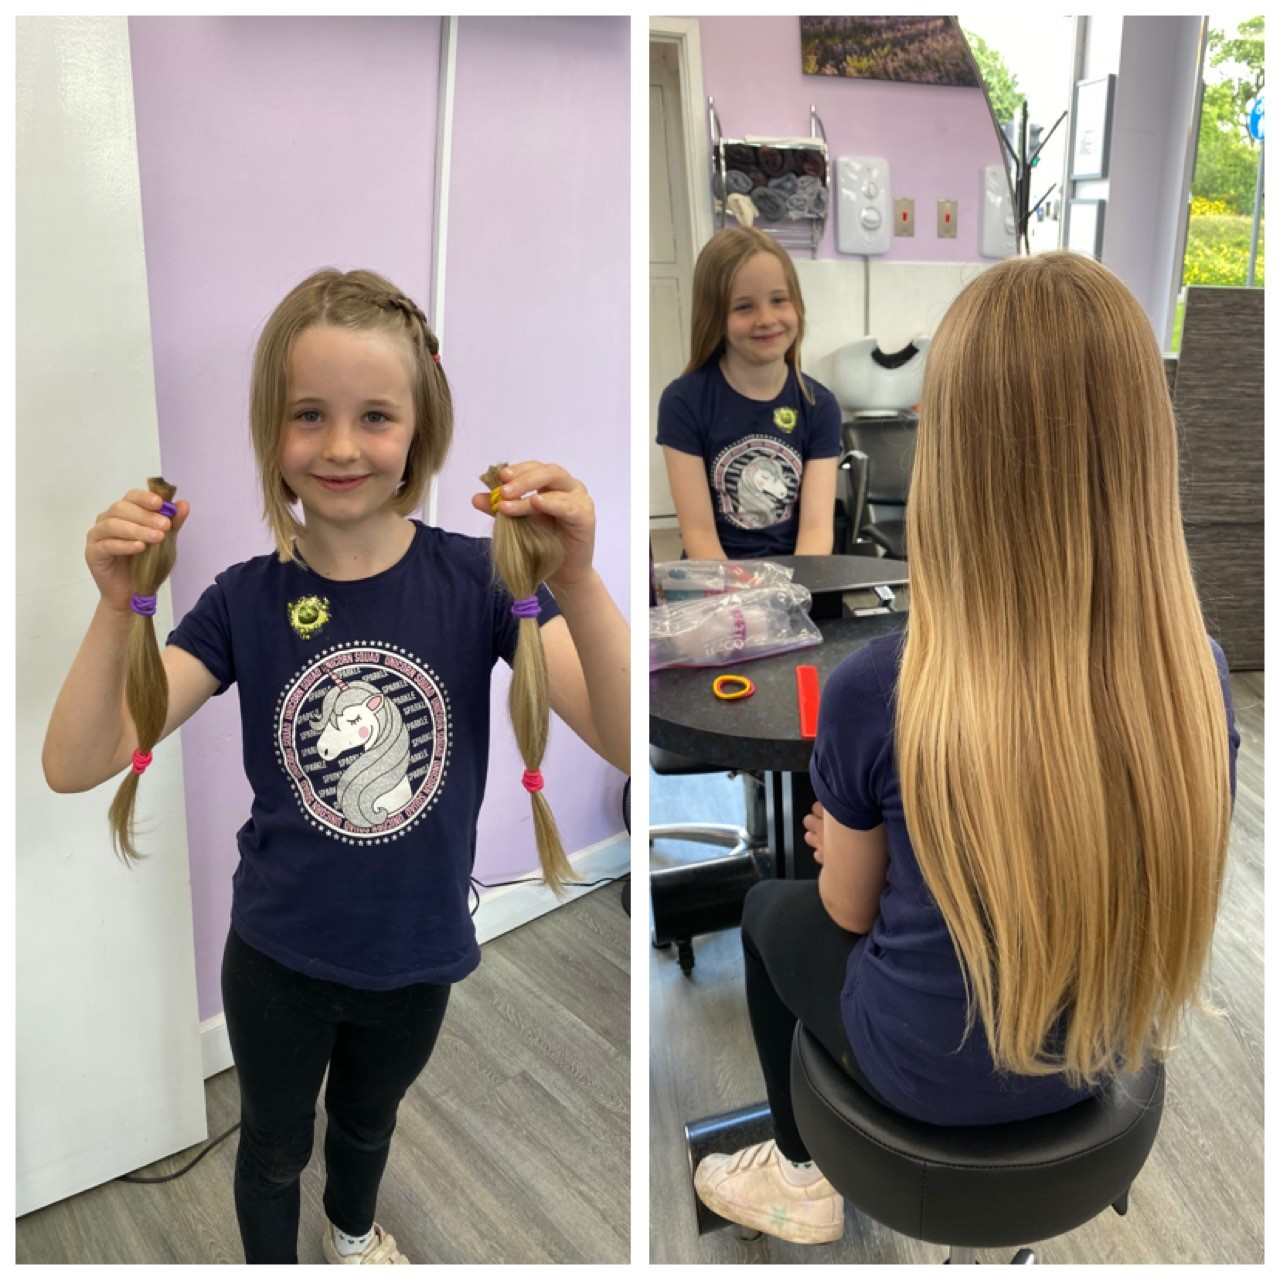 Seven-year-old girl cuts off a lifetime of hair for children's cancer charity